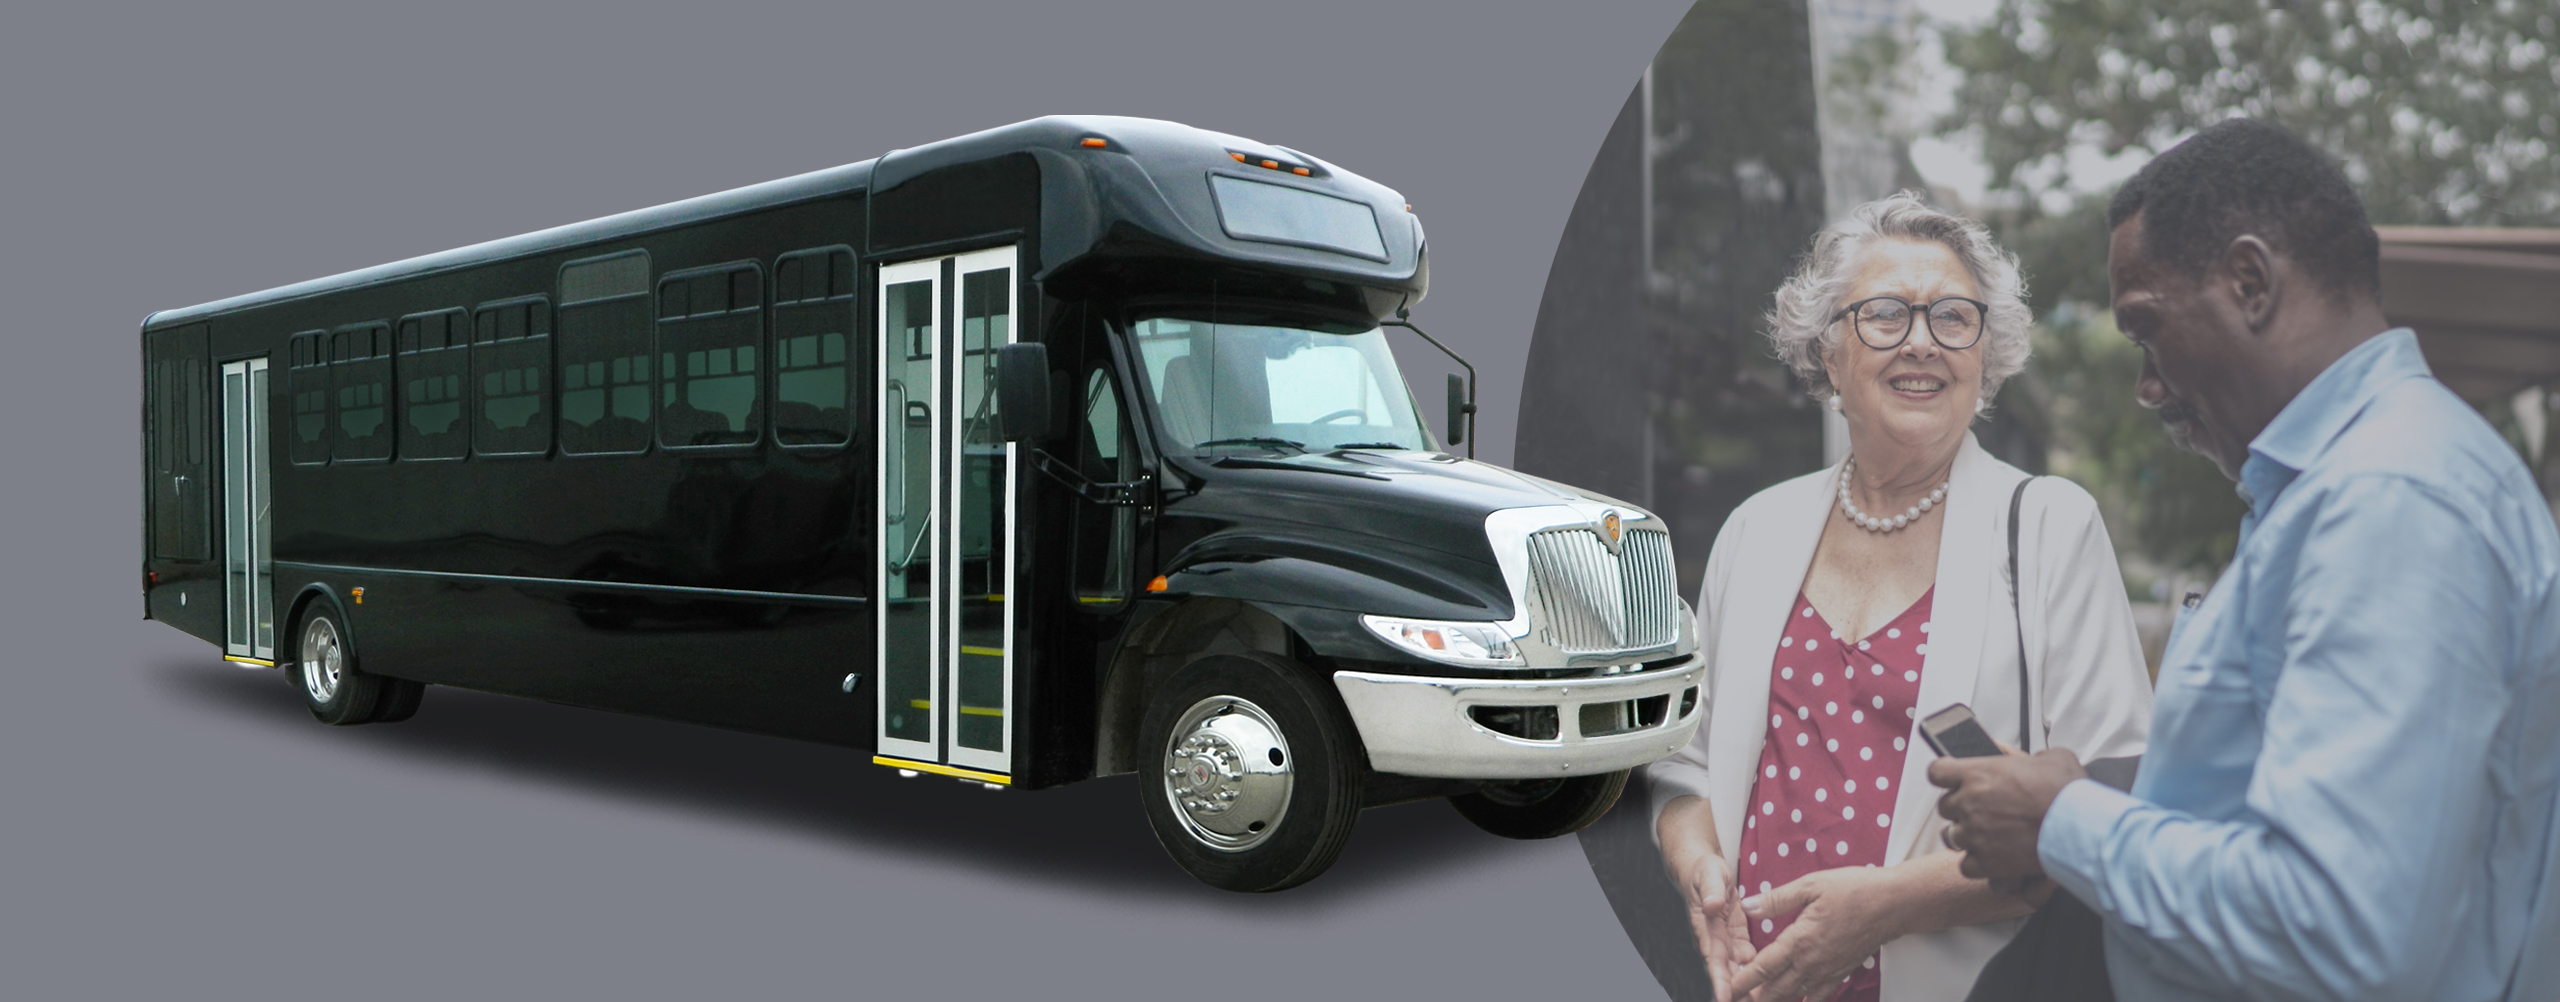 Senator II HD IC | StarTrans Bus - Quality without Compromise.StarTrans Bus